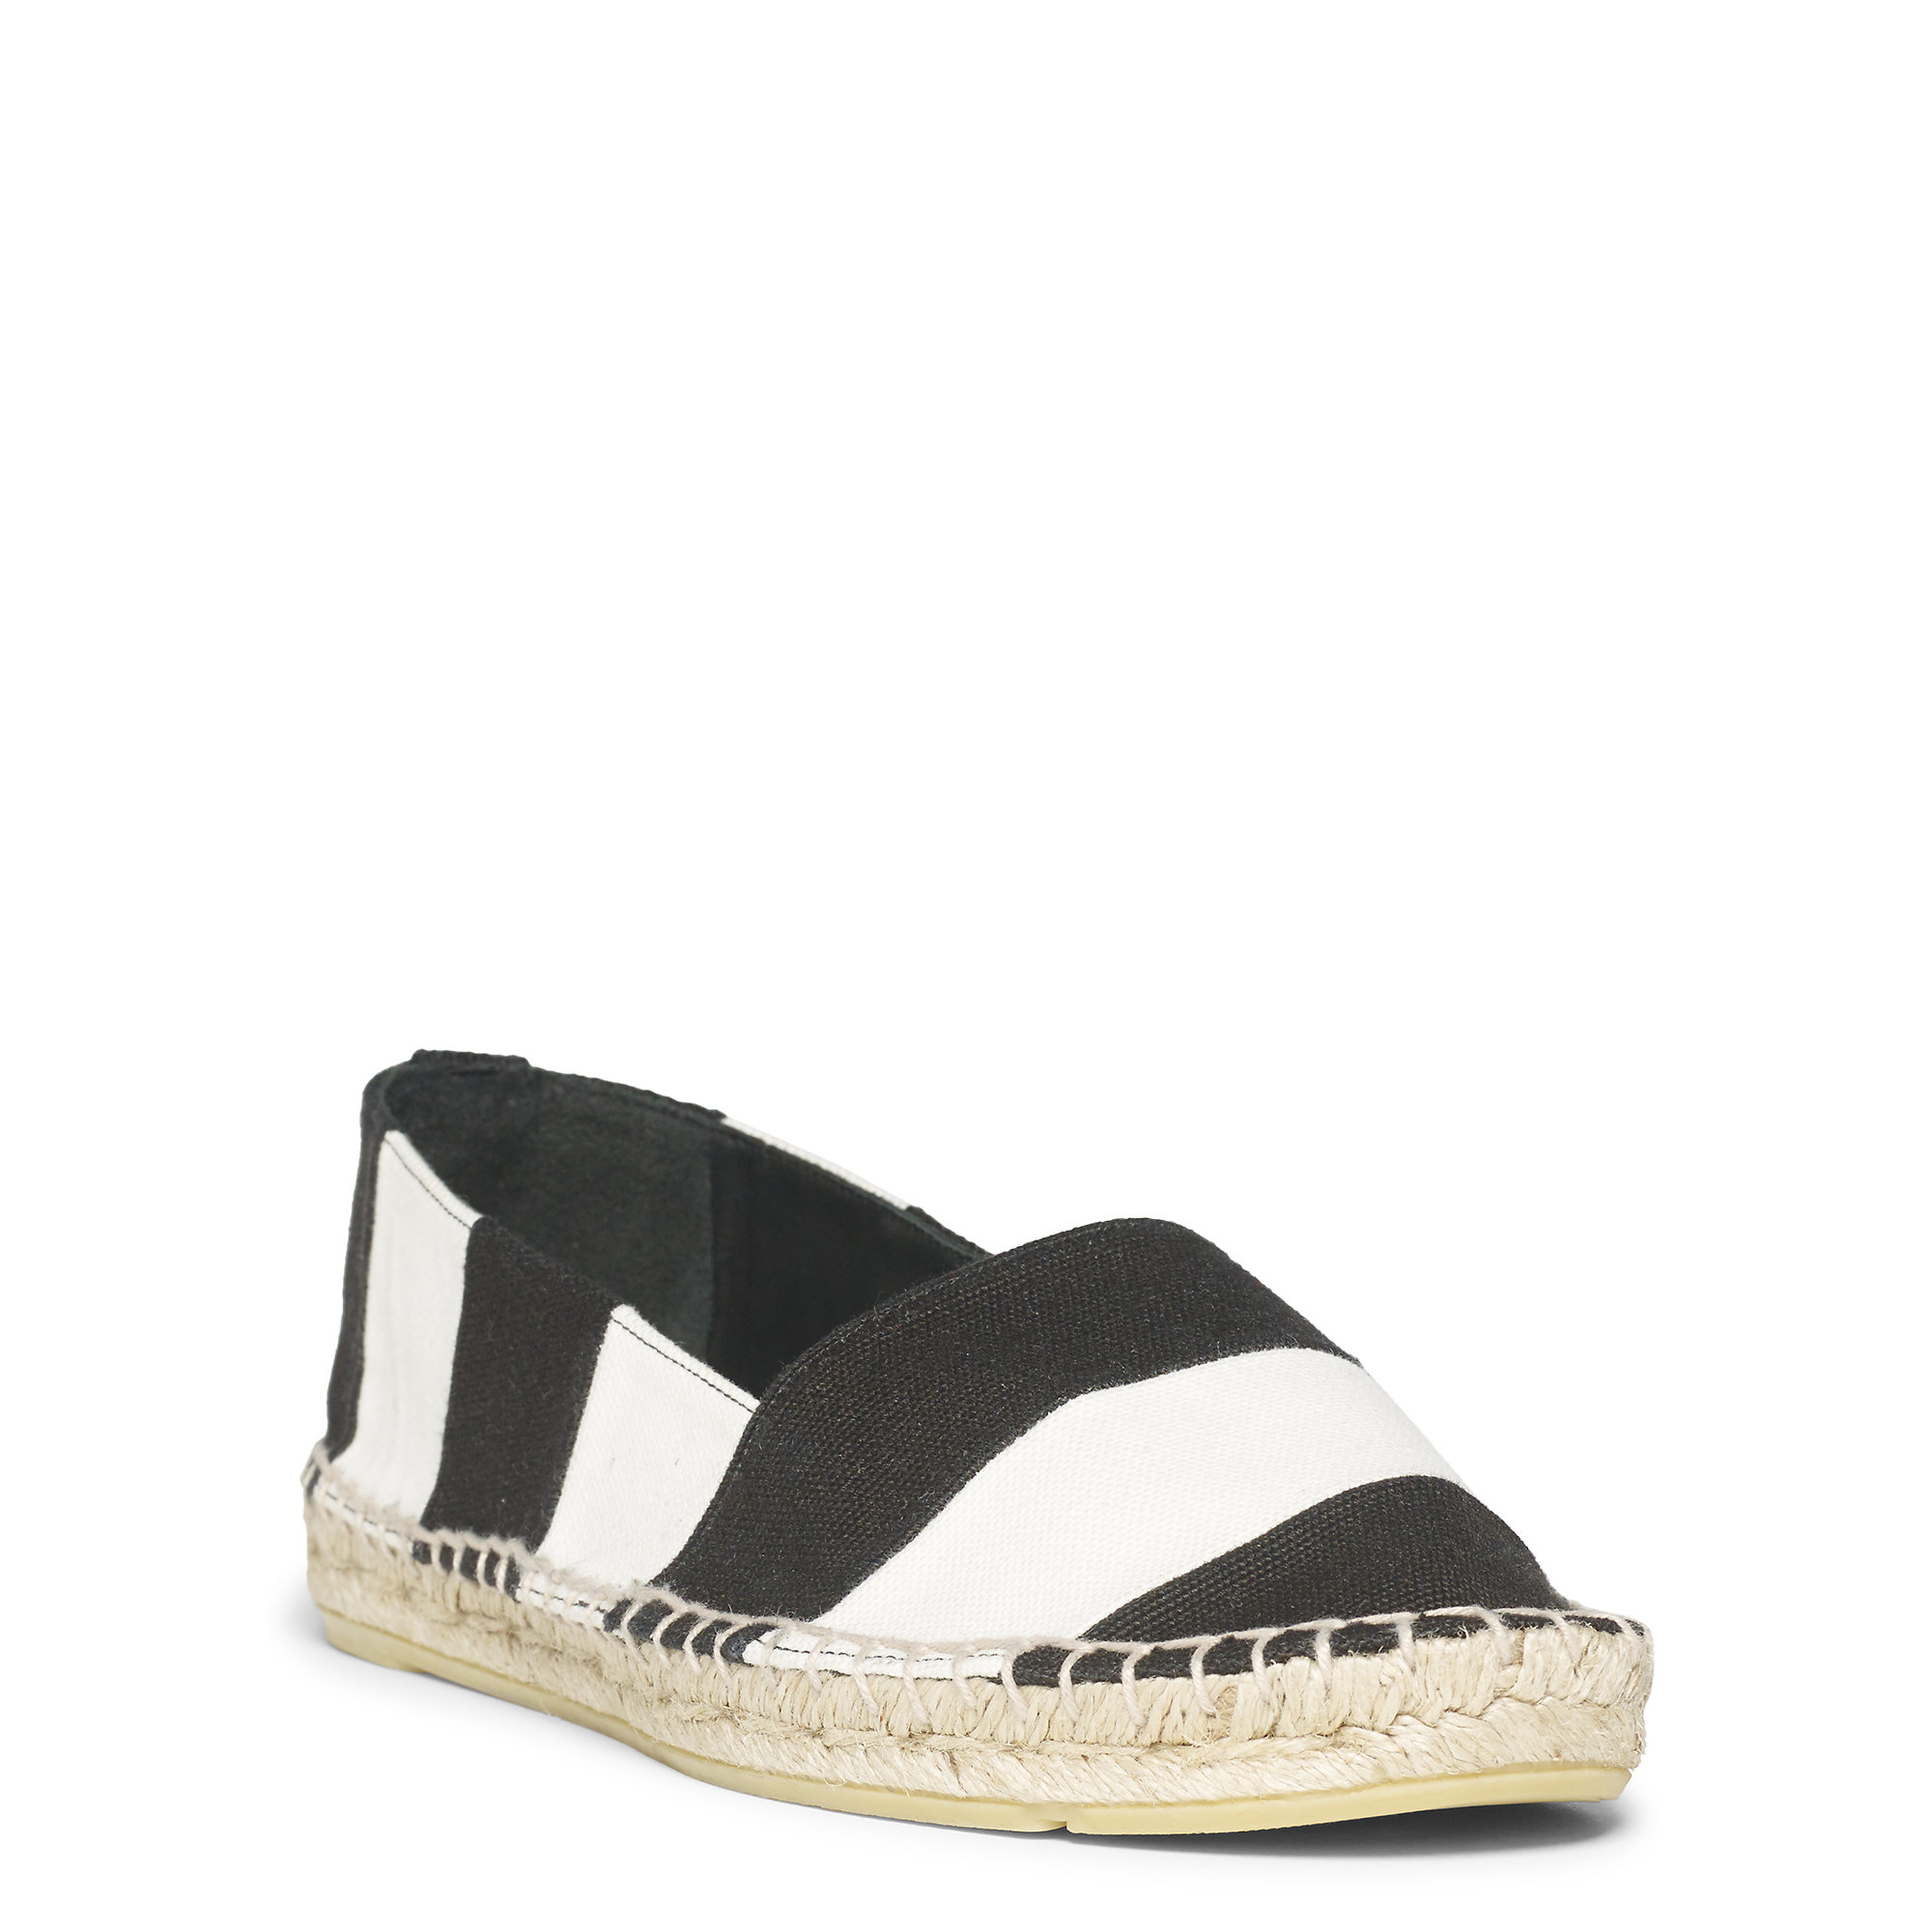 polo ralph lauren striped canvas espadrille in black for men lyst. Black Bedroom Furniture Sets. Home Design Ideas